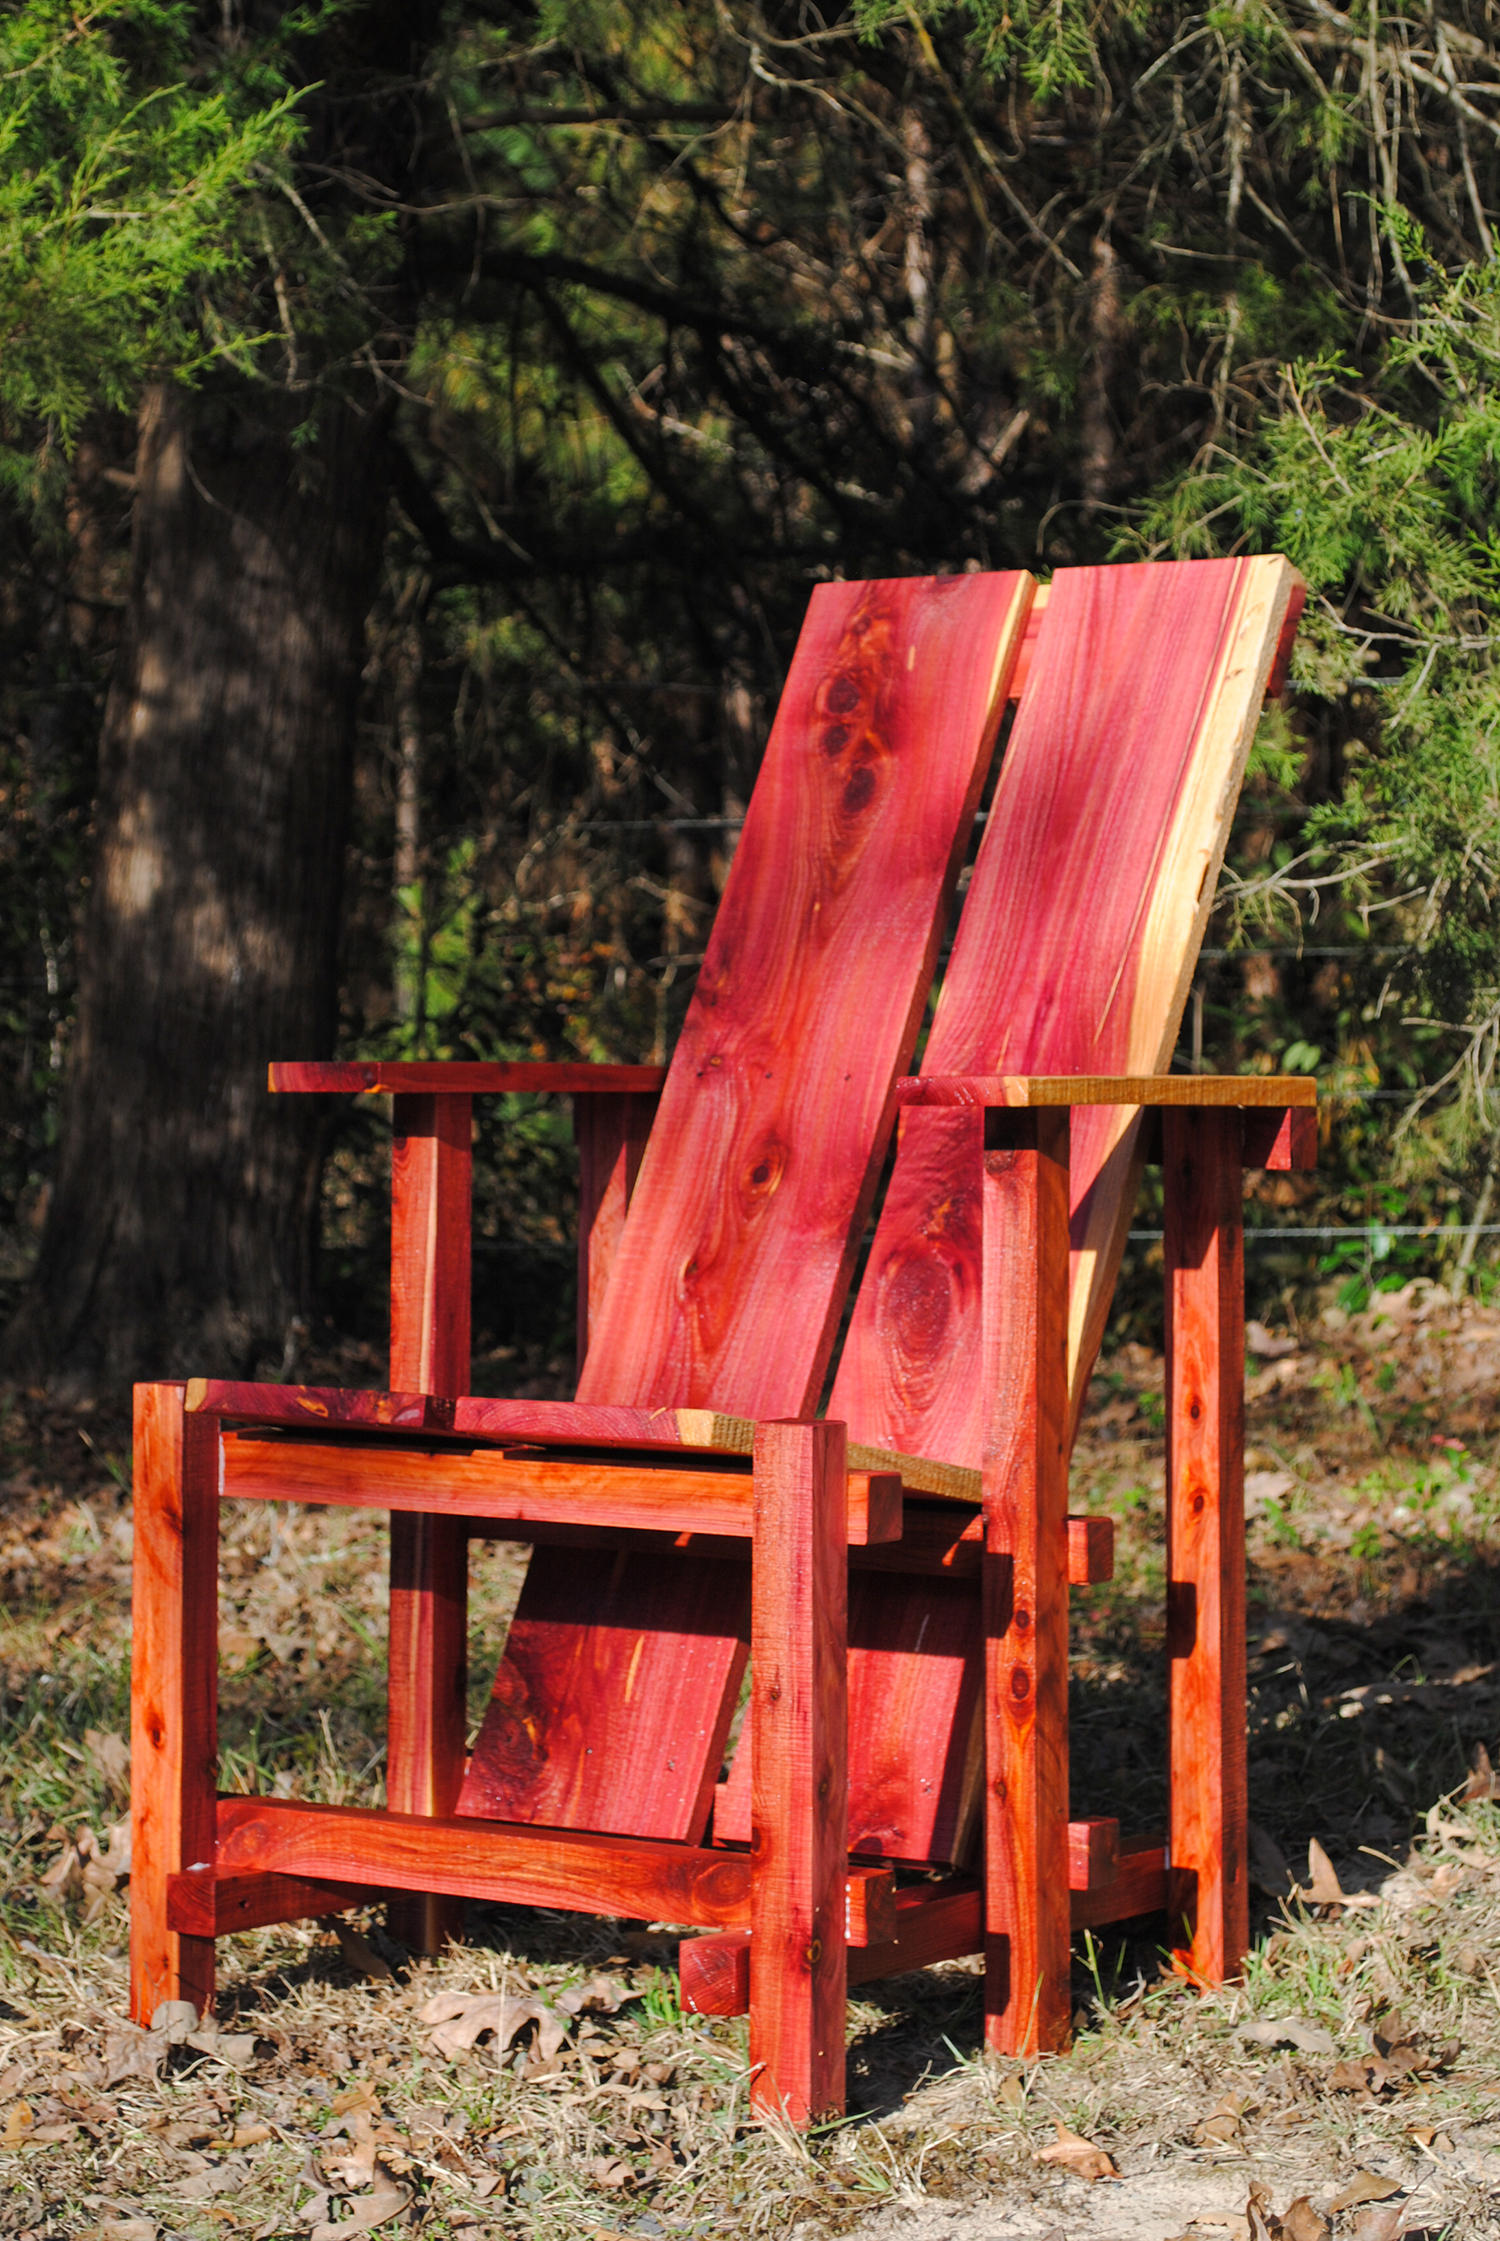 Freshly cut, you can see where eastern red cedar gets it's name. The color will fade to a nice warm tan.